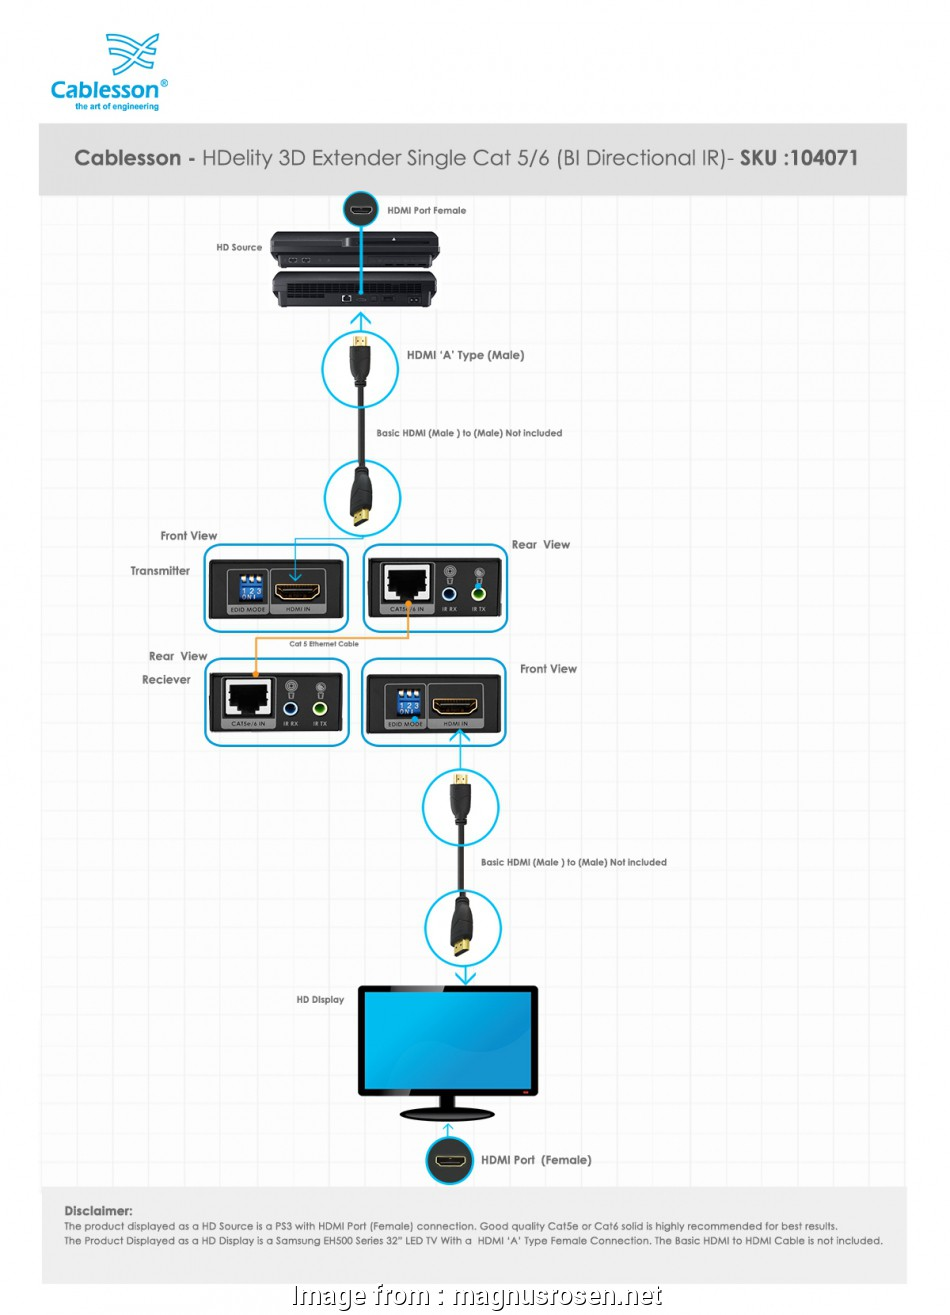 medium resolution of cat 5 wiring diagram video cablesson hdelity hdmi 3d extender single cat5 6 bi directional ir